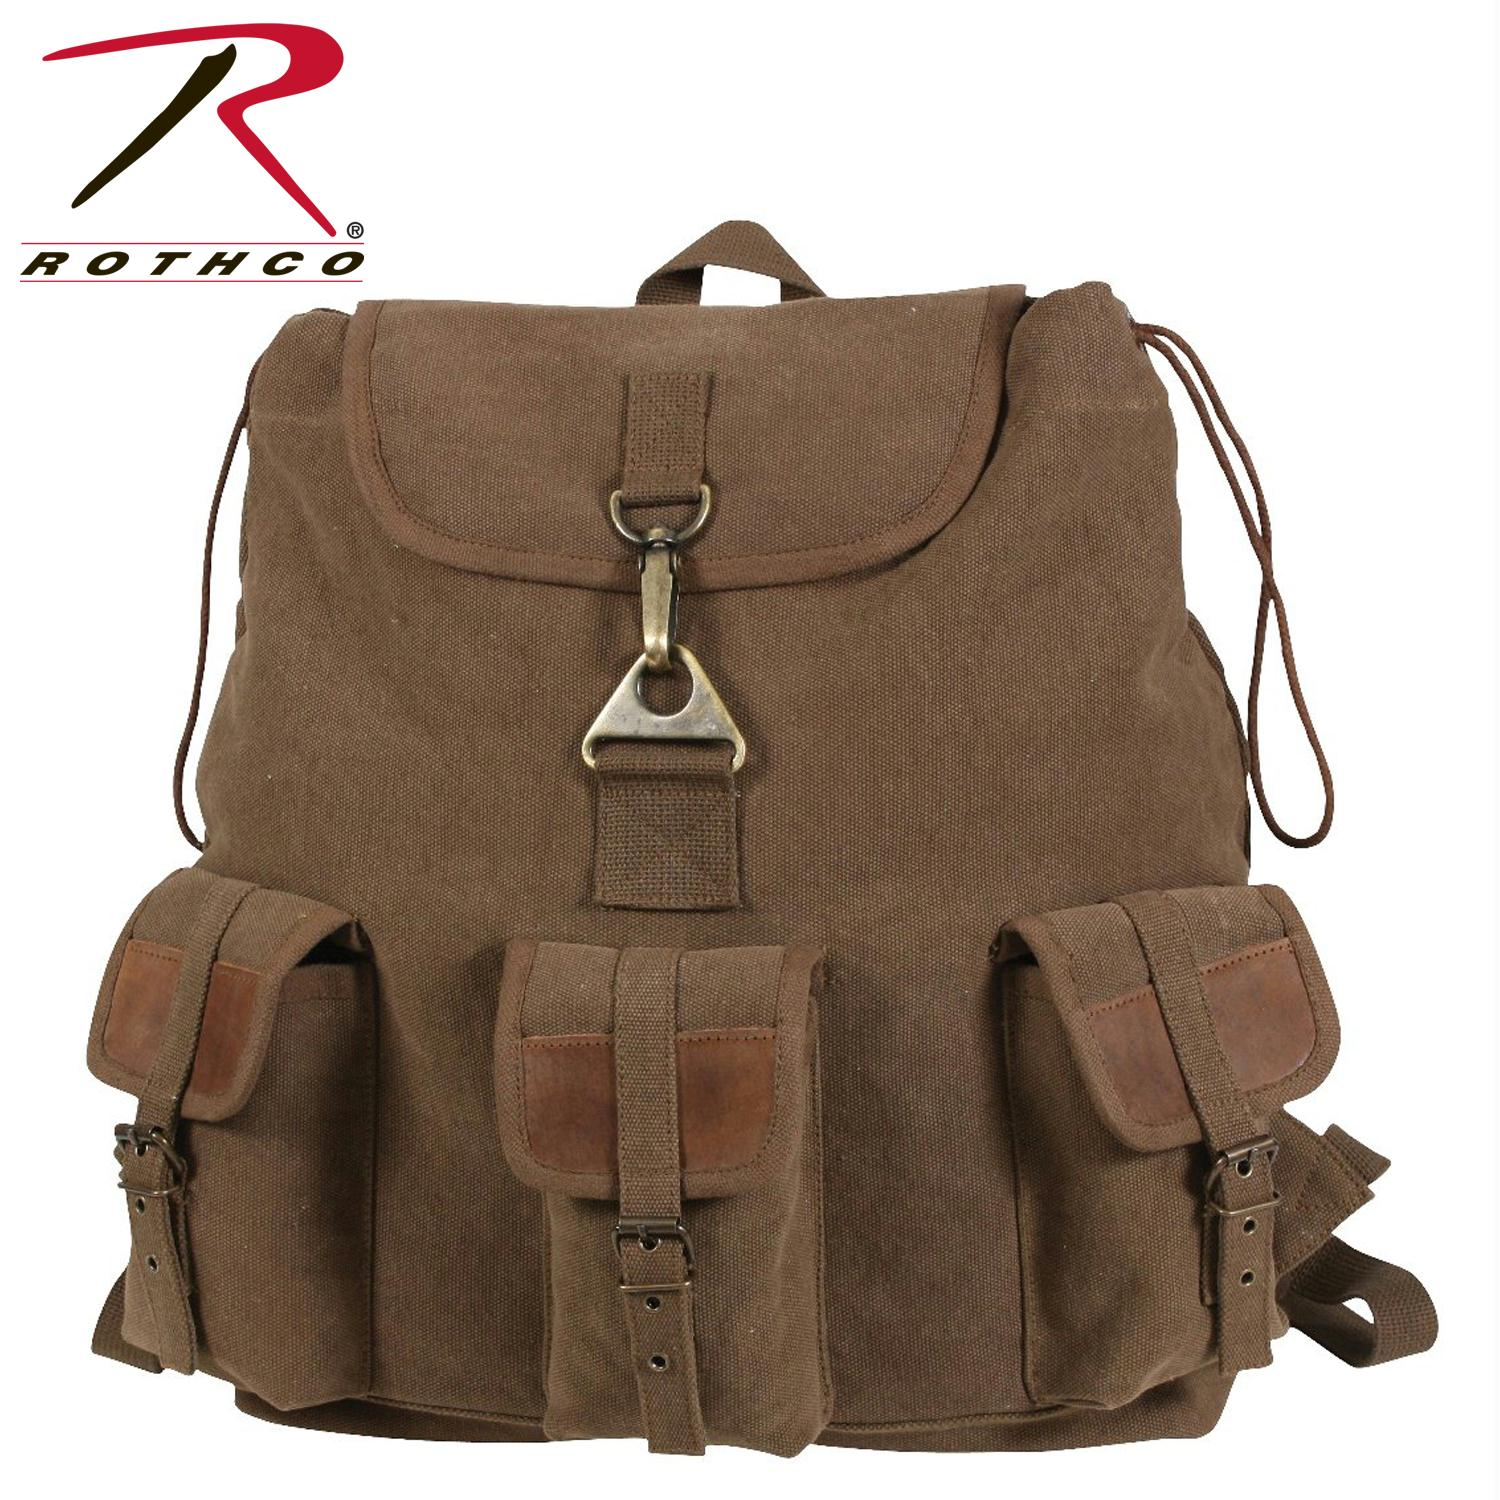 Rothco Vintage Canvas Wayfarer Backpack w/ Leather Accents - Brown